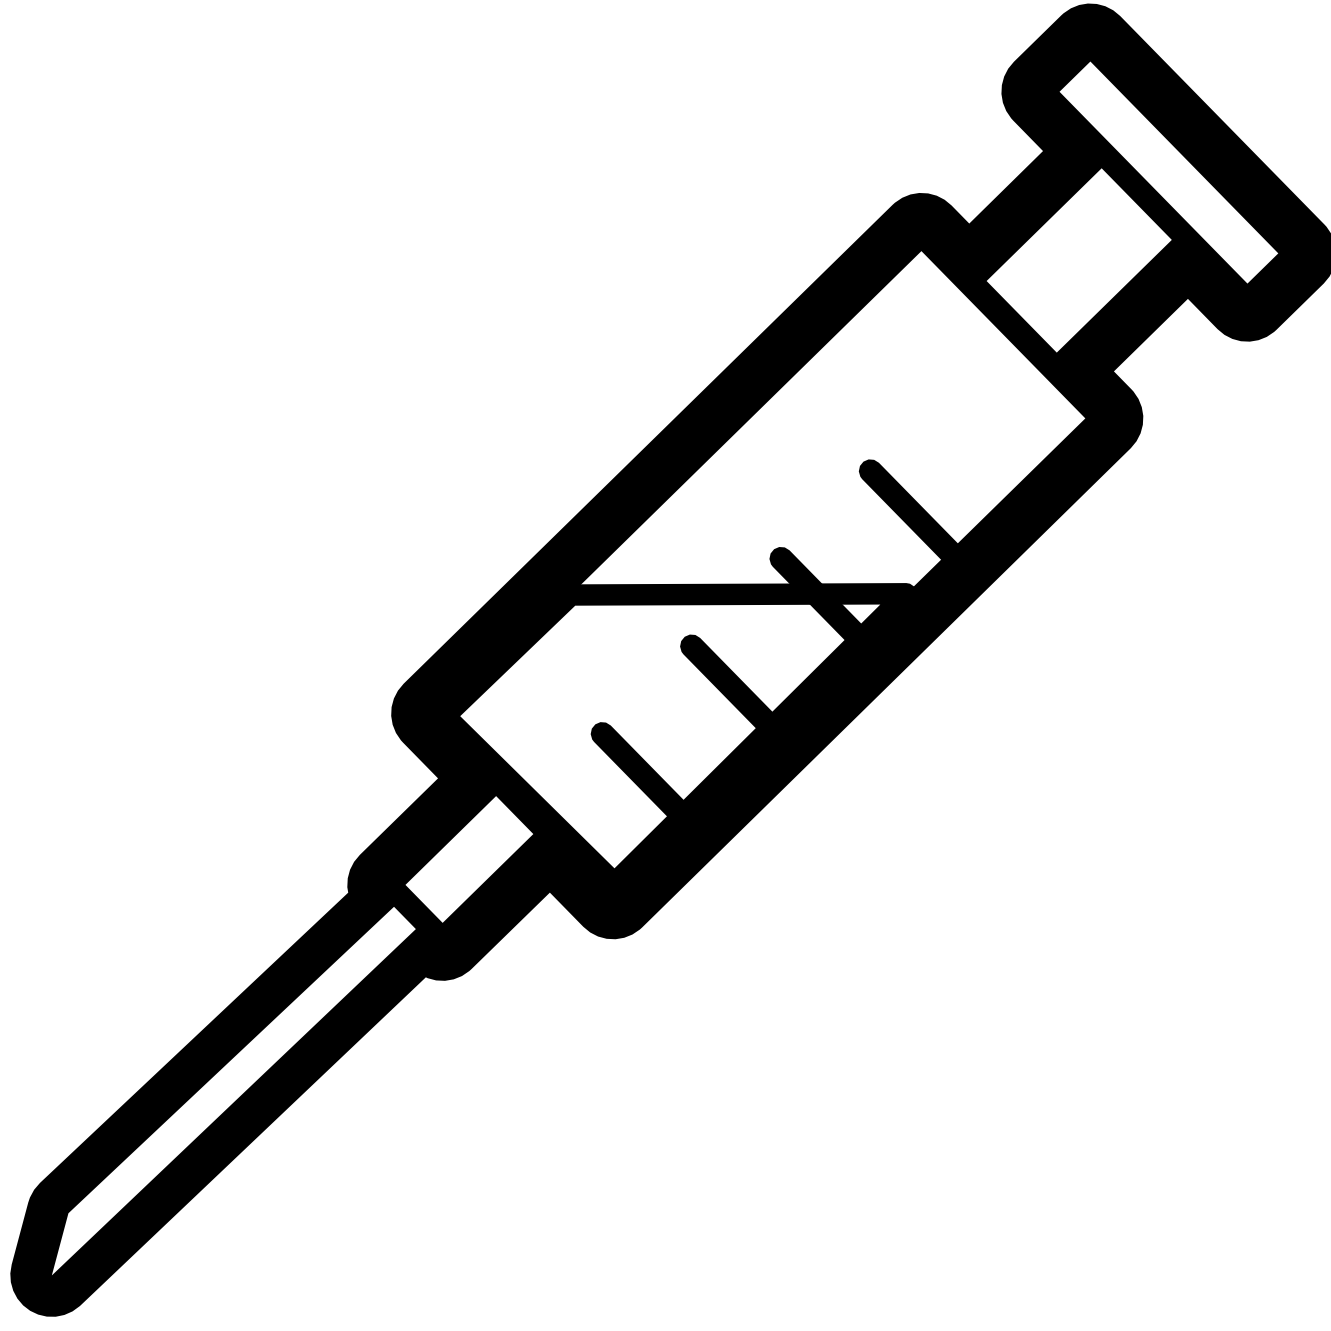 Syringe Vector   Clipart Best